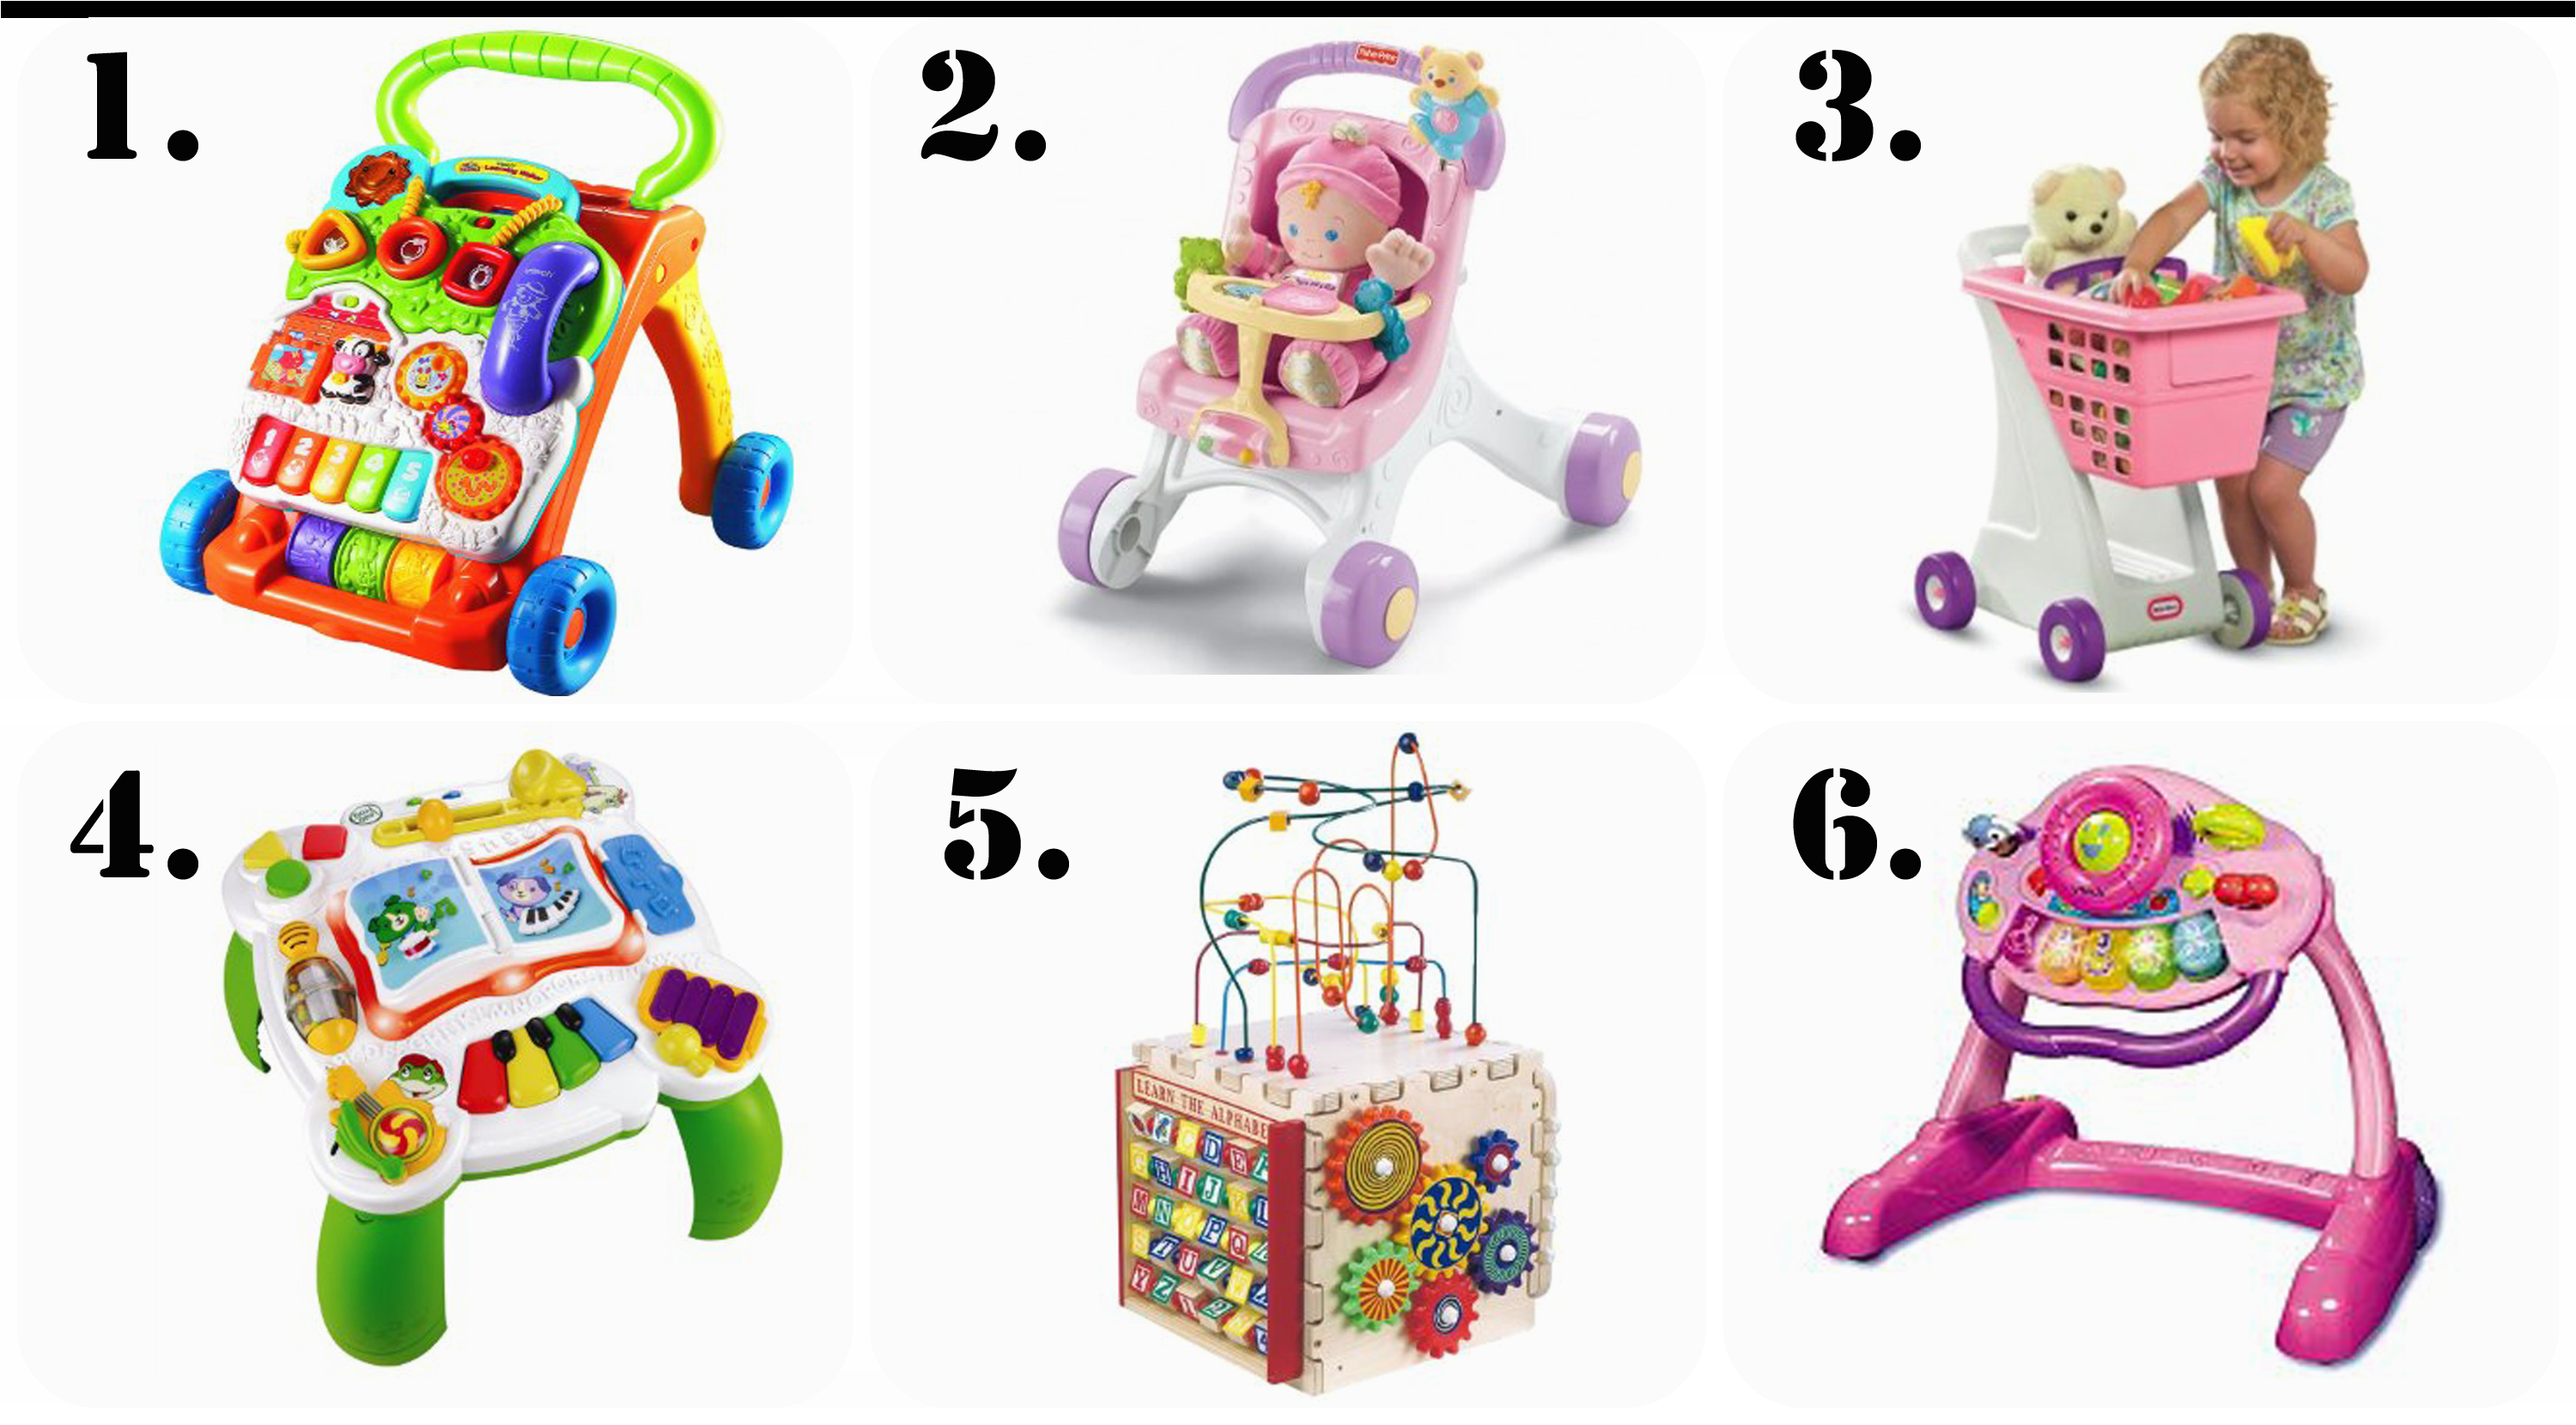 the ultimate gift list for a 1 year old girl